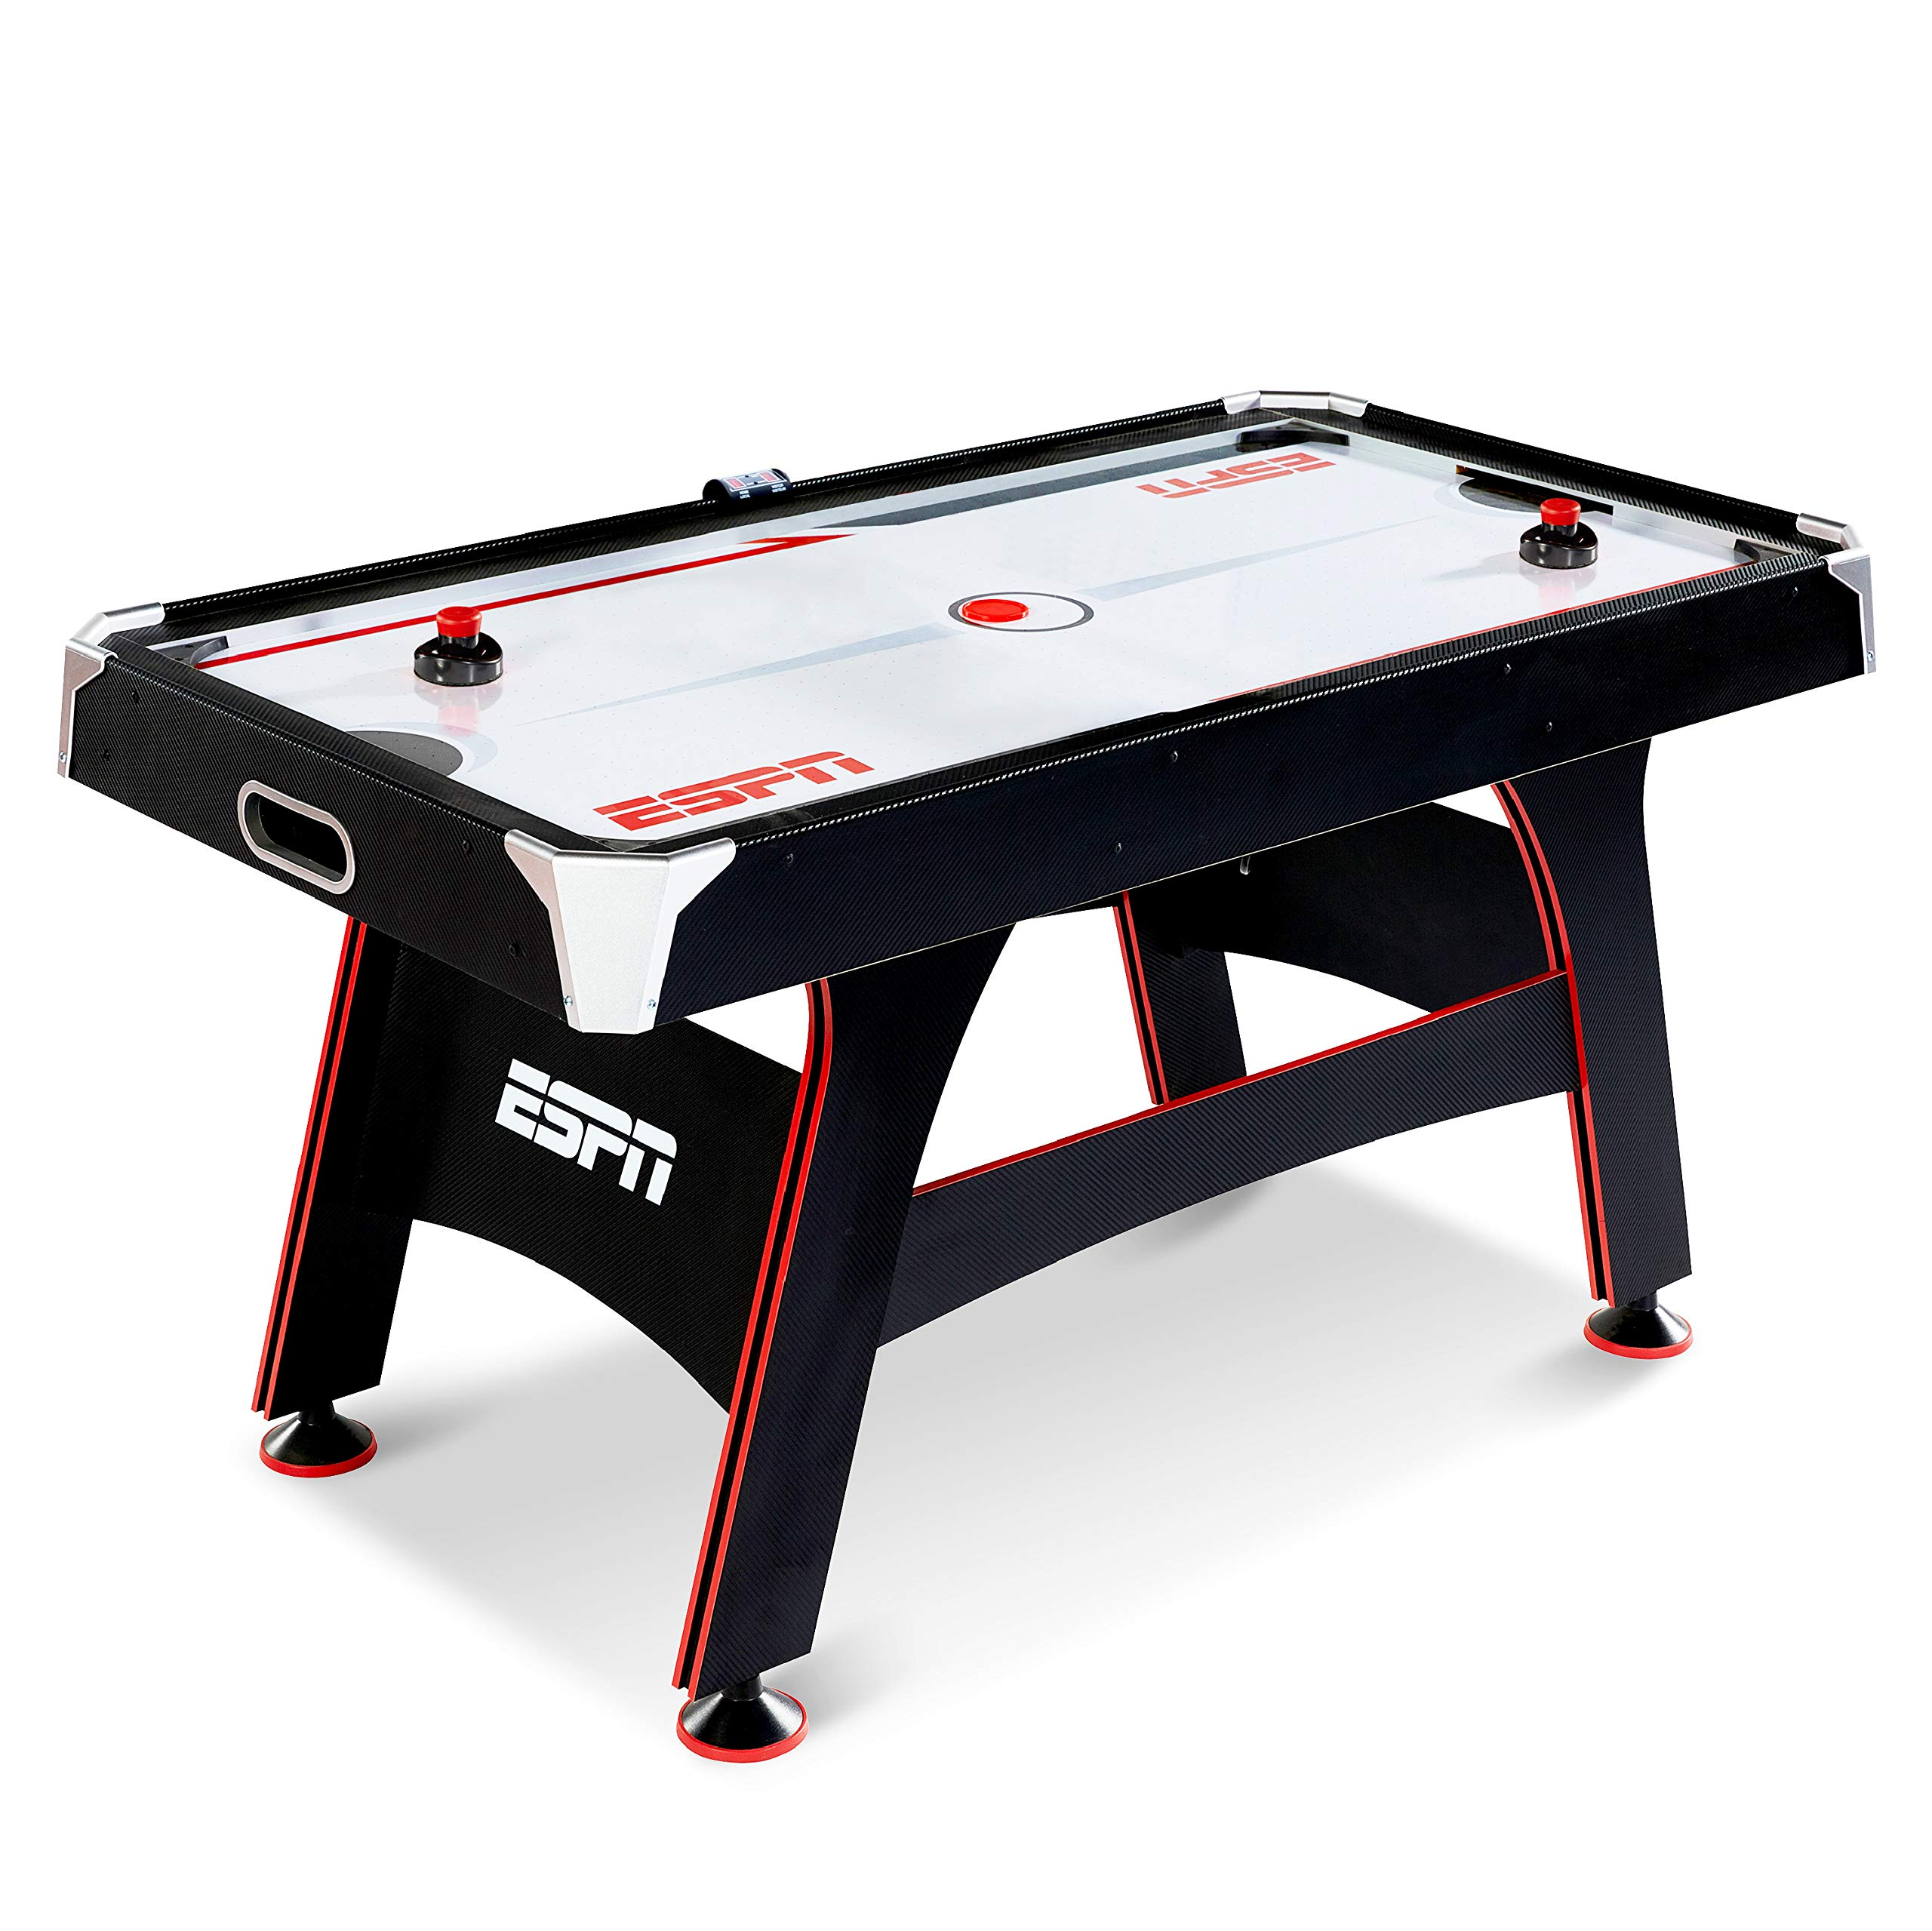 ESPN Air Hockey Game Table: Indoor Sports Gaming Table Set with Equipment Accessories - 2 Paddles, 2 Pucks, and LED Electronic Score Keeper - 5 Feet by ESPN